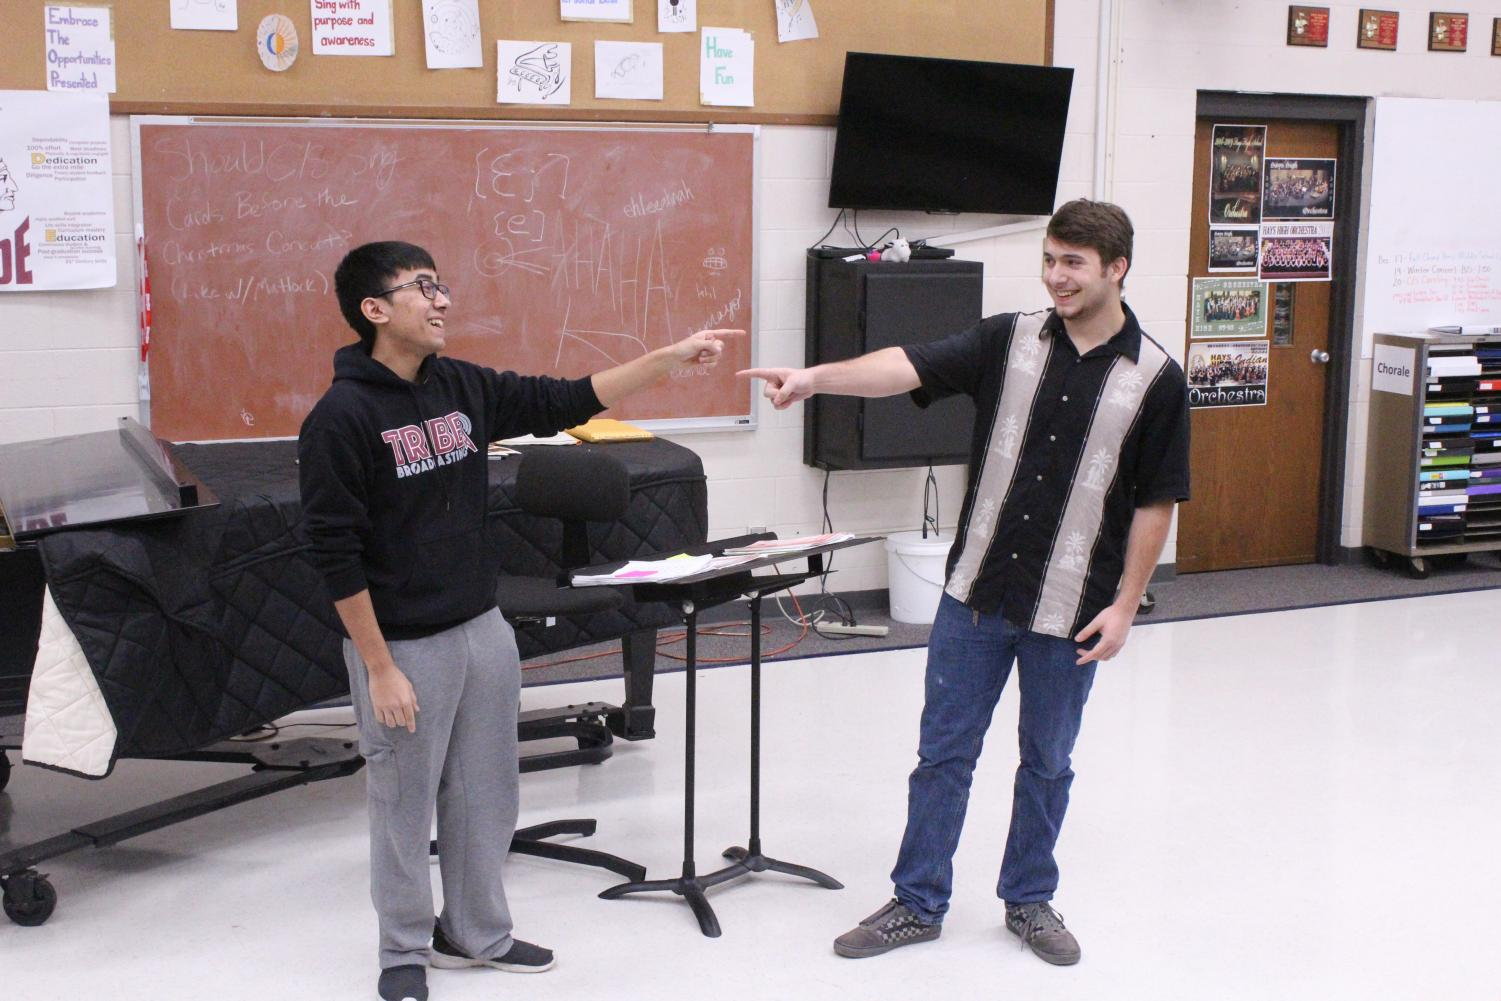 Senior Derrick Aragon and junior Eythun Wyatt perform in front of the panel of judges for the talent show auditions.